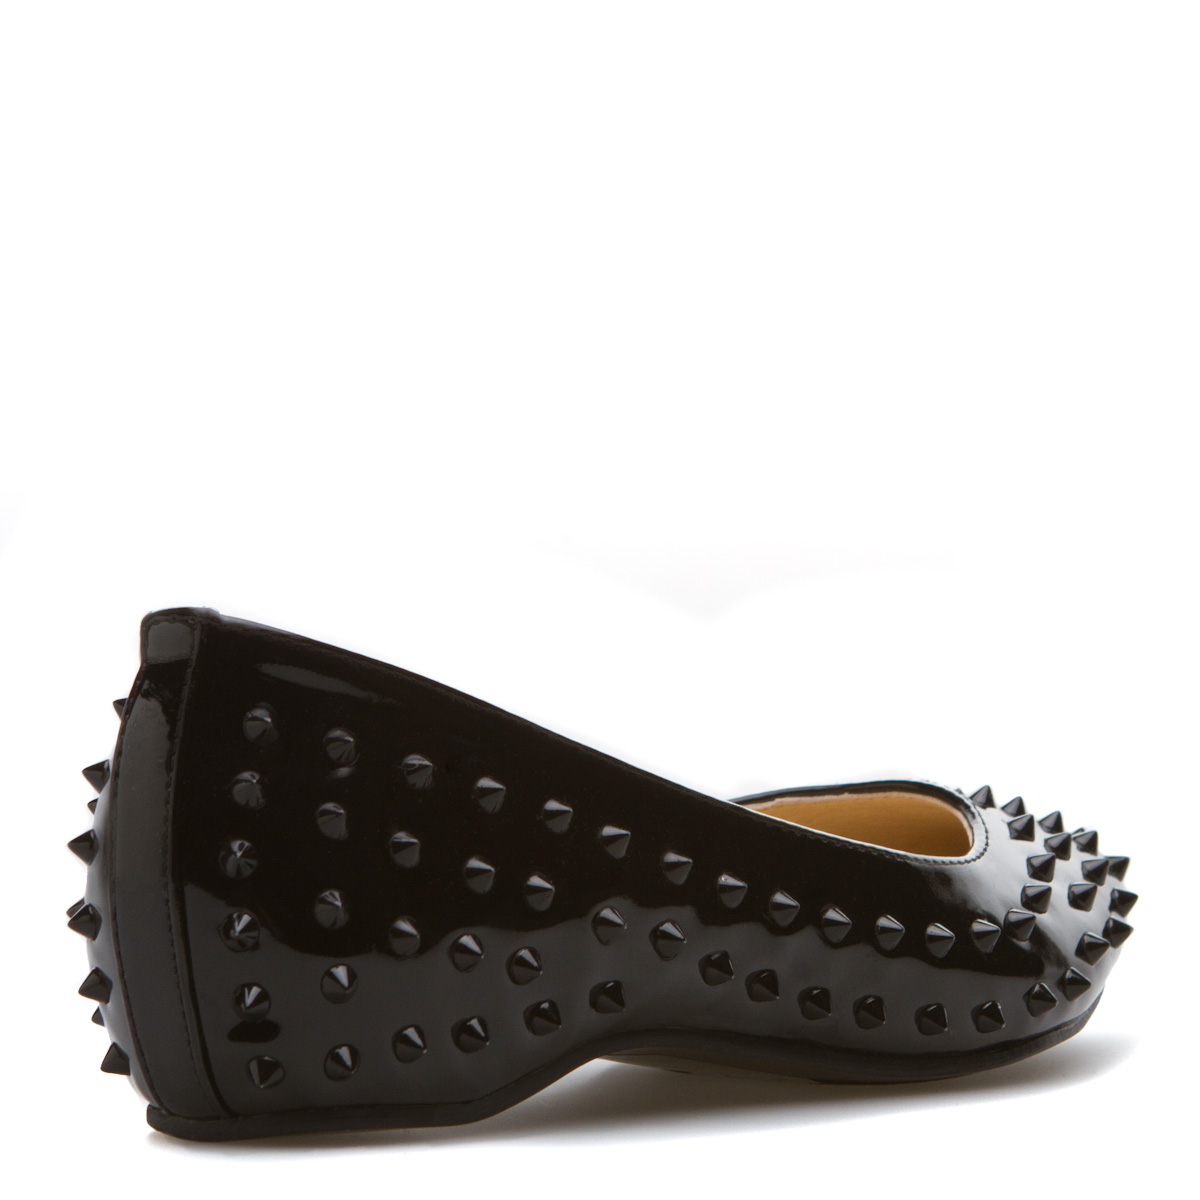 Penneys Shoes Mens